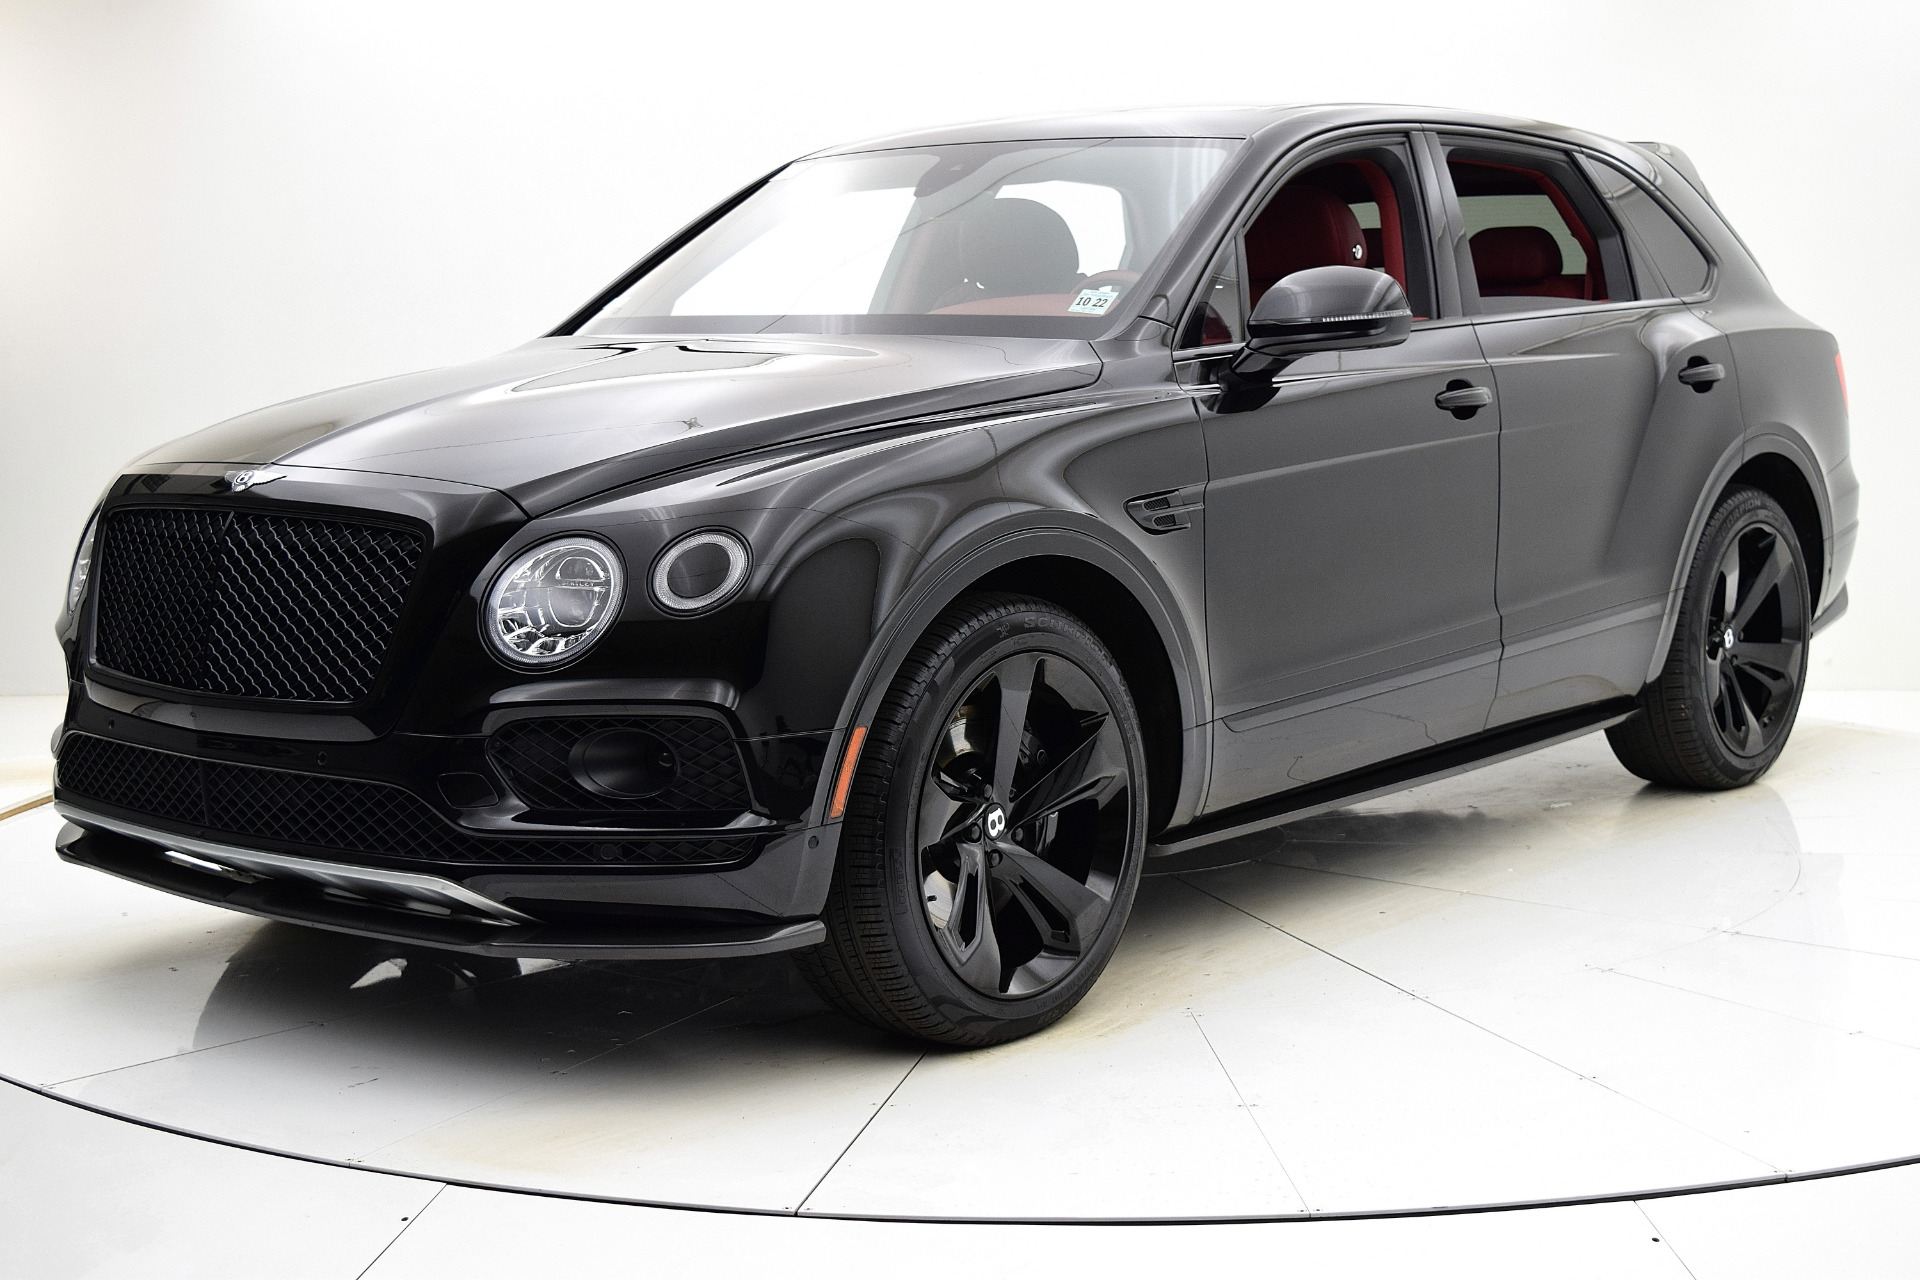 Used 2018 Bentley Bentayga Black Edition for sale Sold at F.C. Kerbeck Aston Martin in Palmyra NJ 08065 2